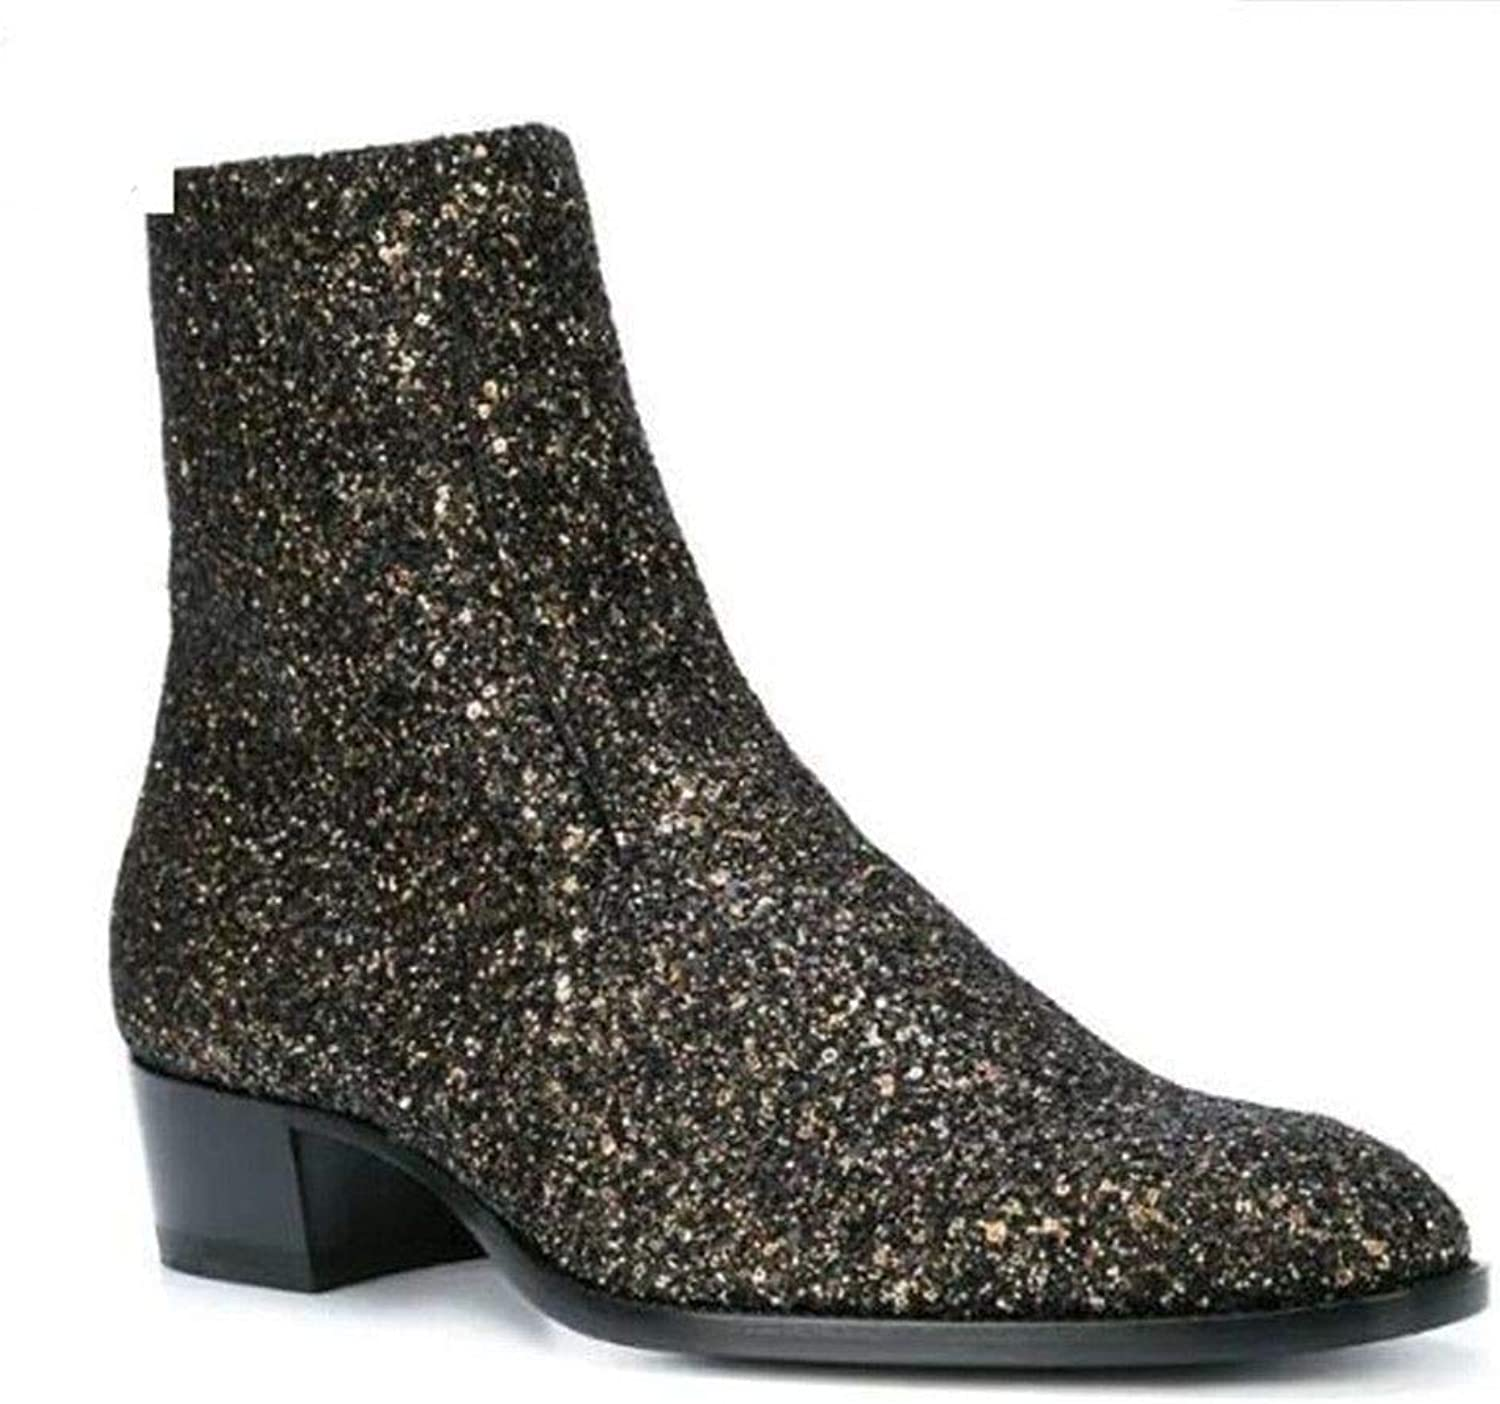 Newstarshop Genuine Leather Bling gold Men Fashion Chelsea Boots Low Heel Side Zipper Top Ankle Boots shoes